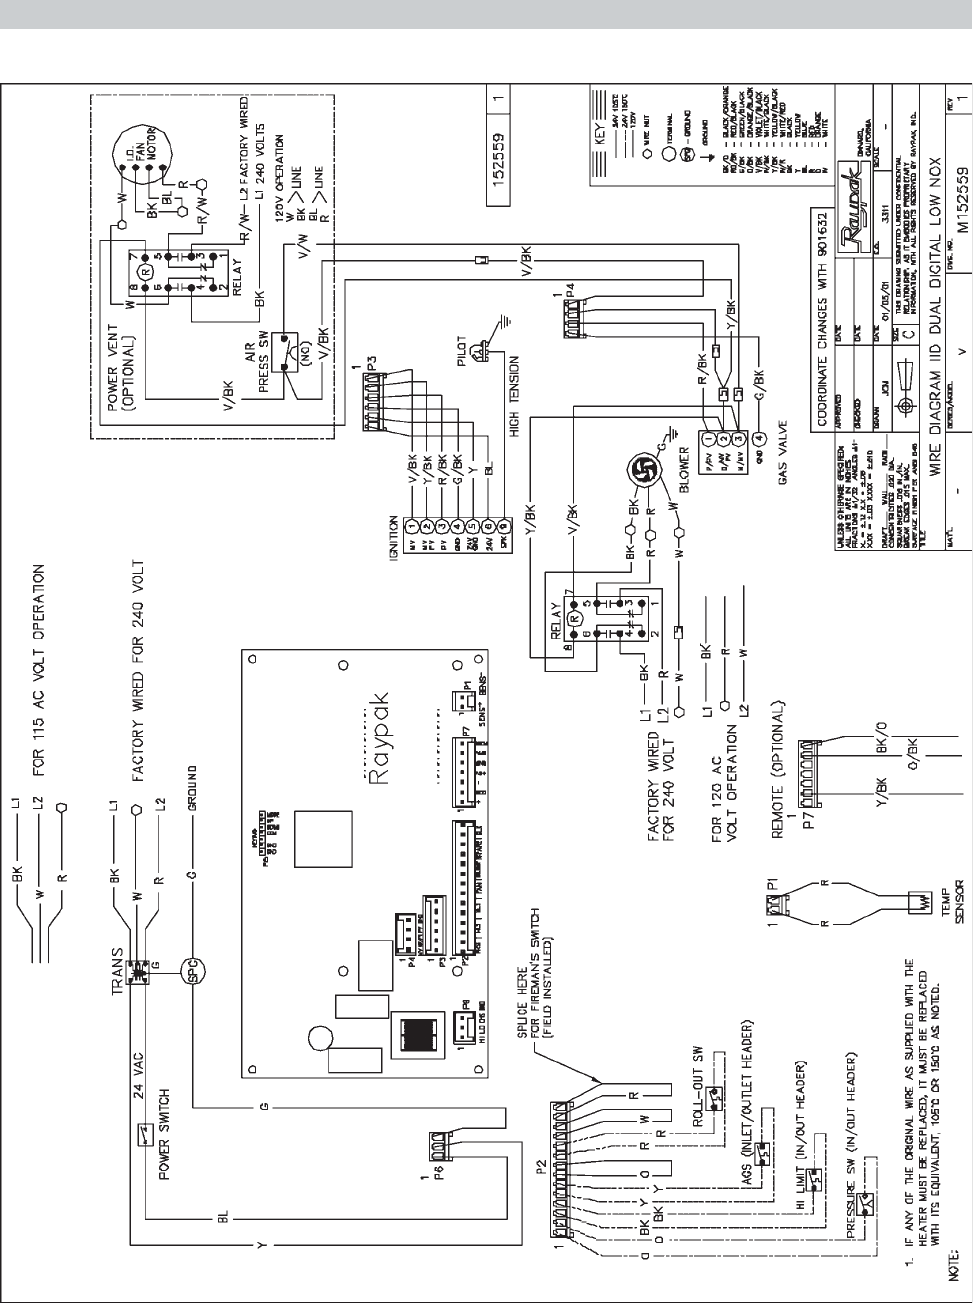 raypak 552 wiring diagram raypak database wiring diagram images raypak pool heater wiring diagram